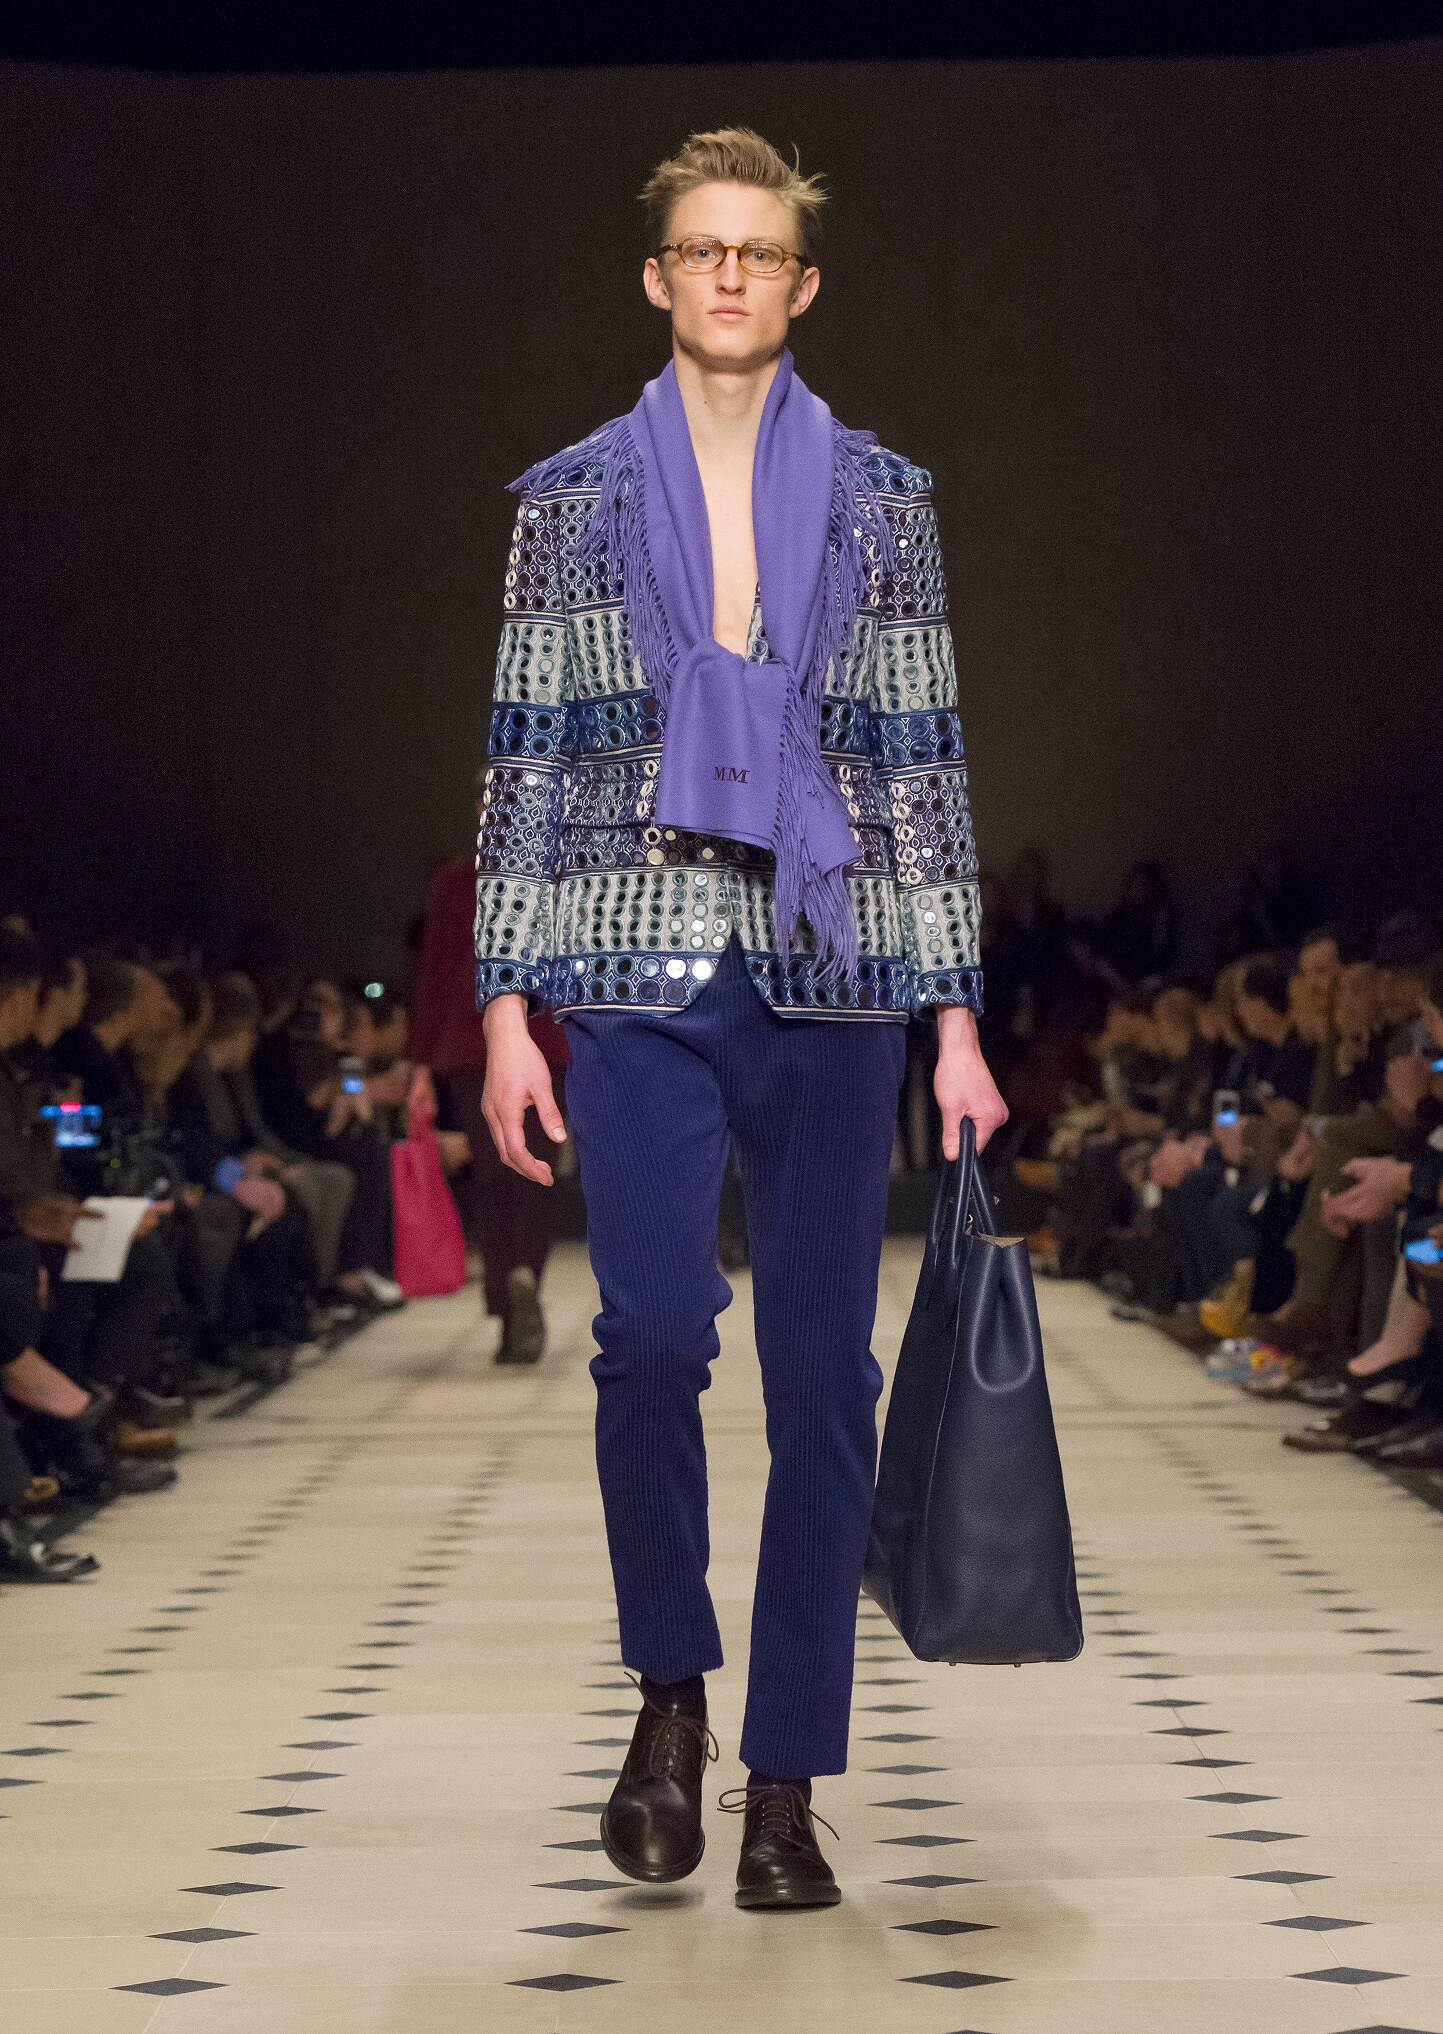 Fall 2016 Man Fashion Show Burberry Prorsum